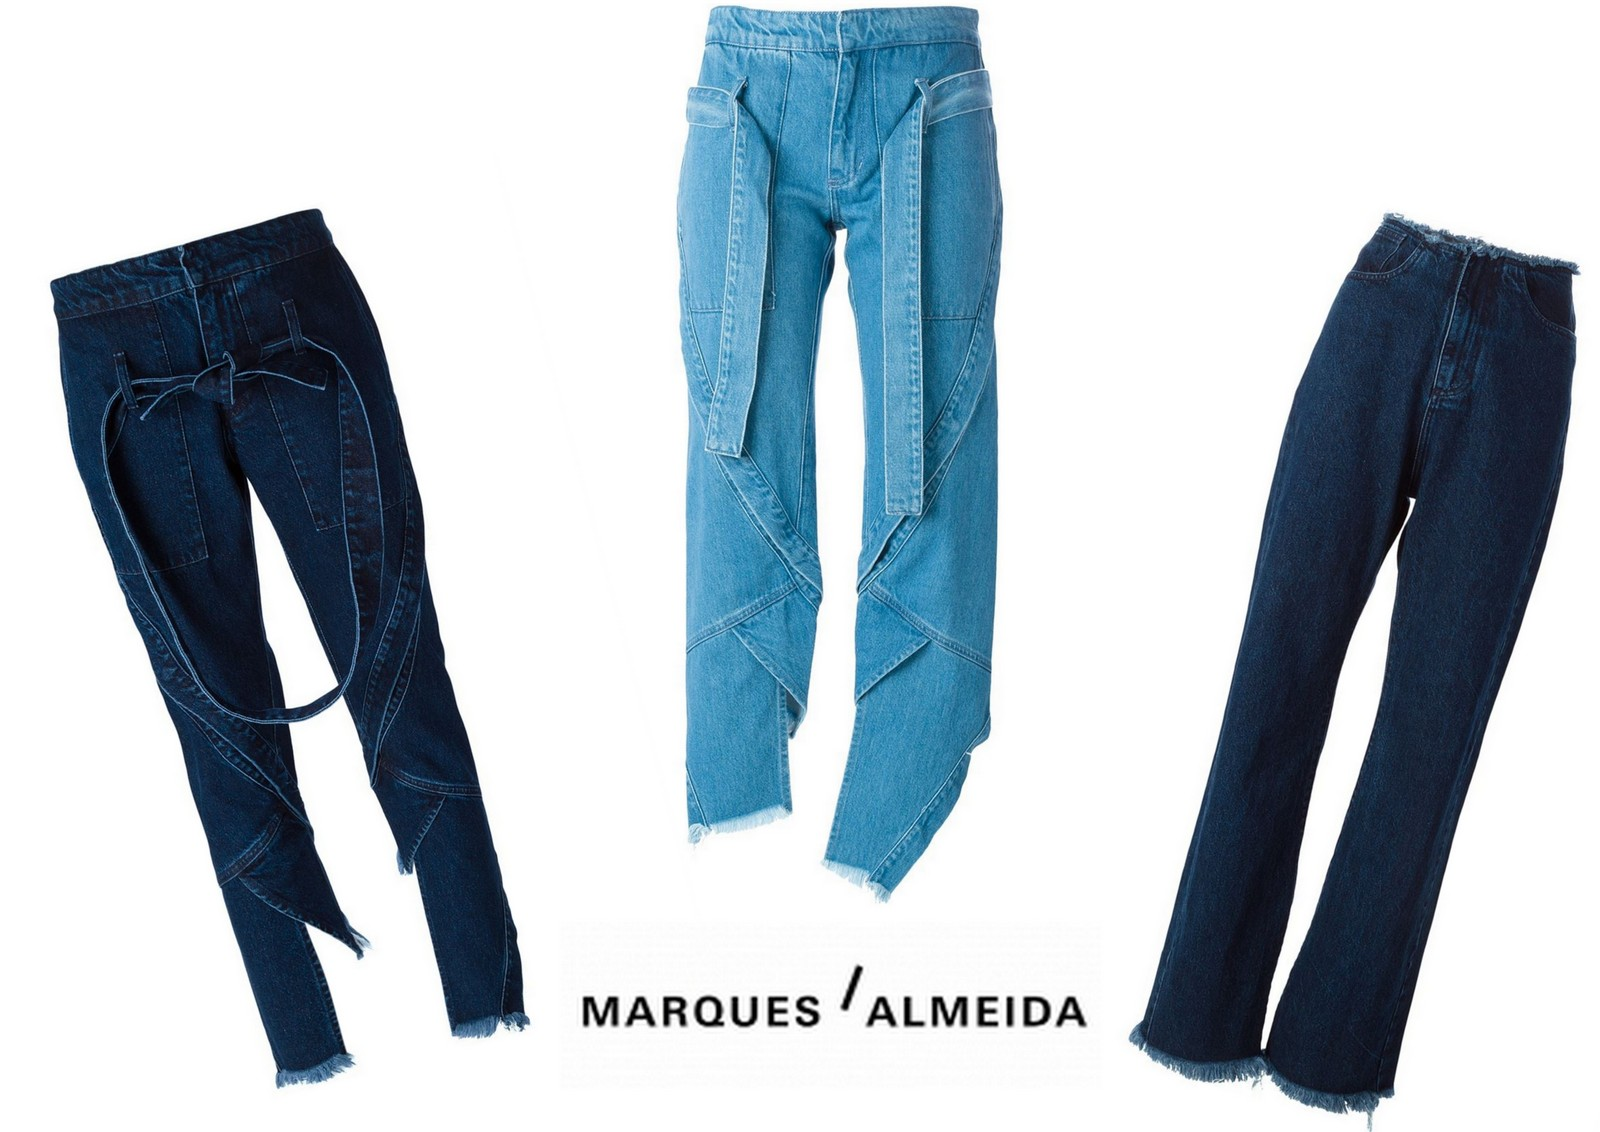 denim, jeans, trend, Zara, osman, each x other, rag & bone, alexa chung for ag jeans, caron callahan, marques almeida,